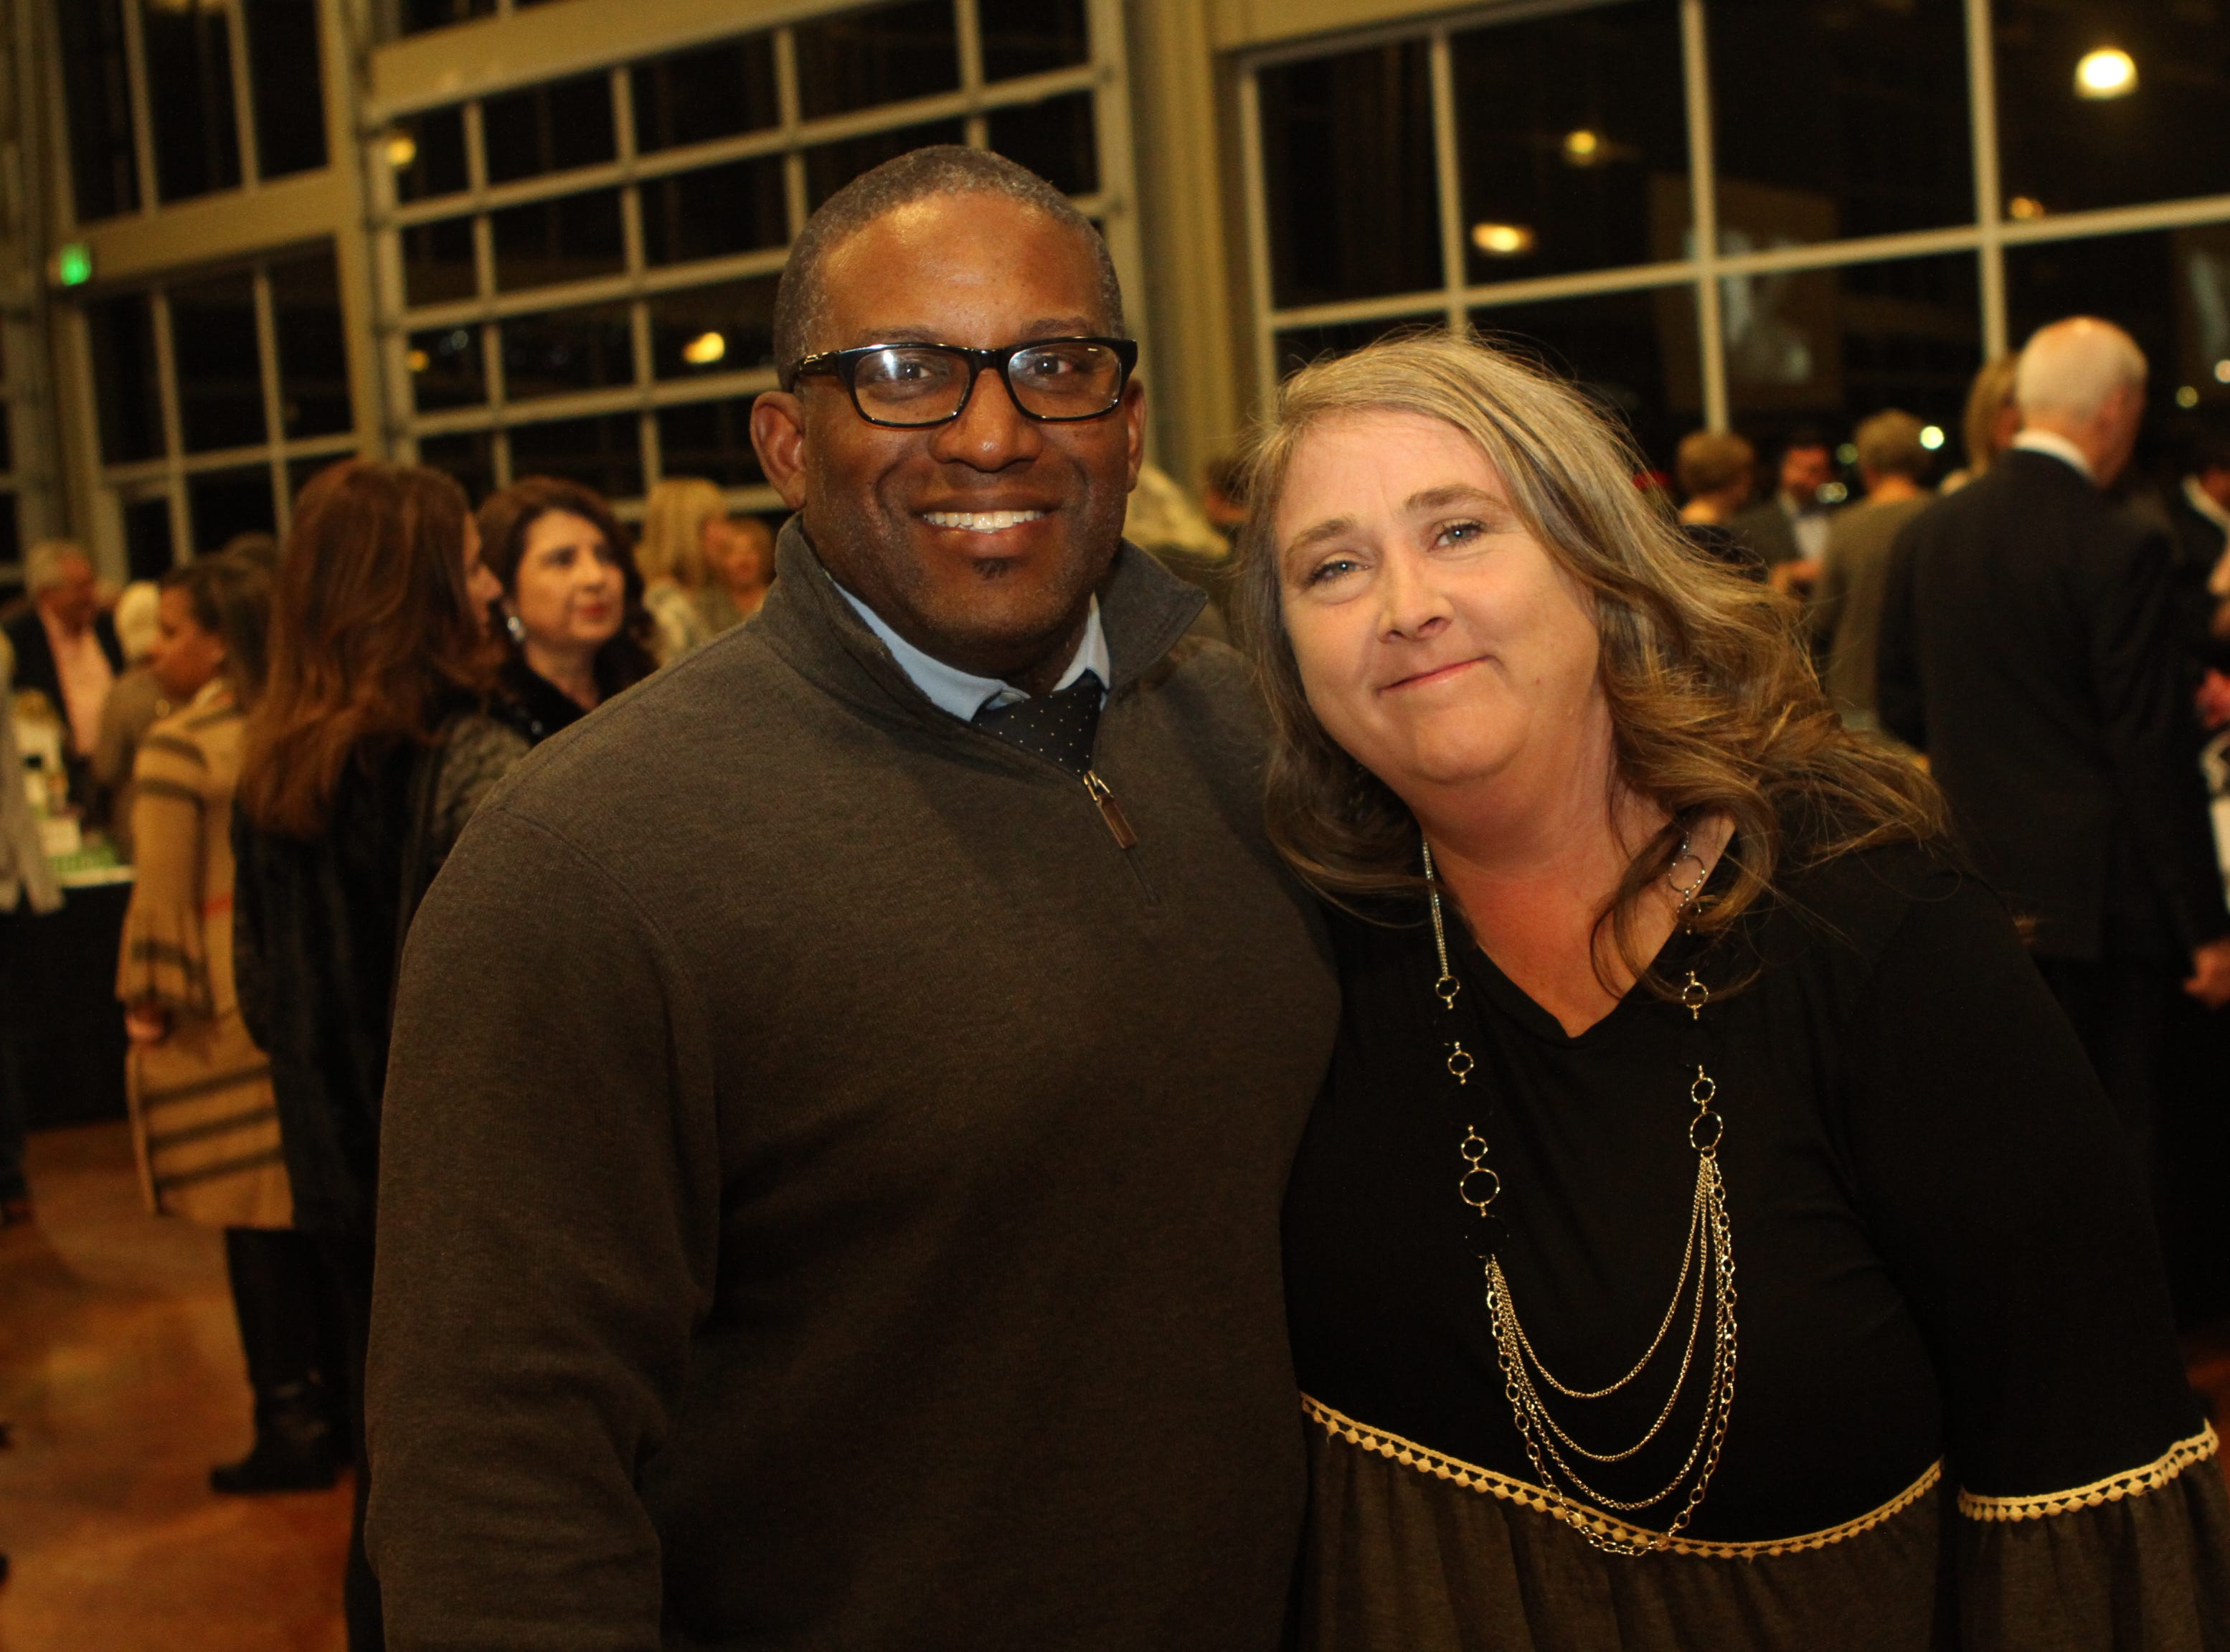 Deanta and Sarah Mcafee at CMC Education Foundation's annual fundraiser Vision to Reality on Friday, November 2, 2018